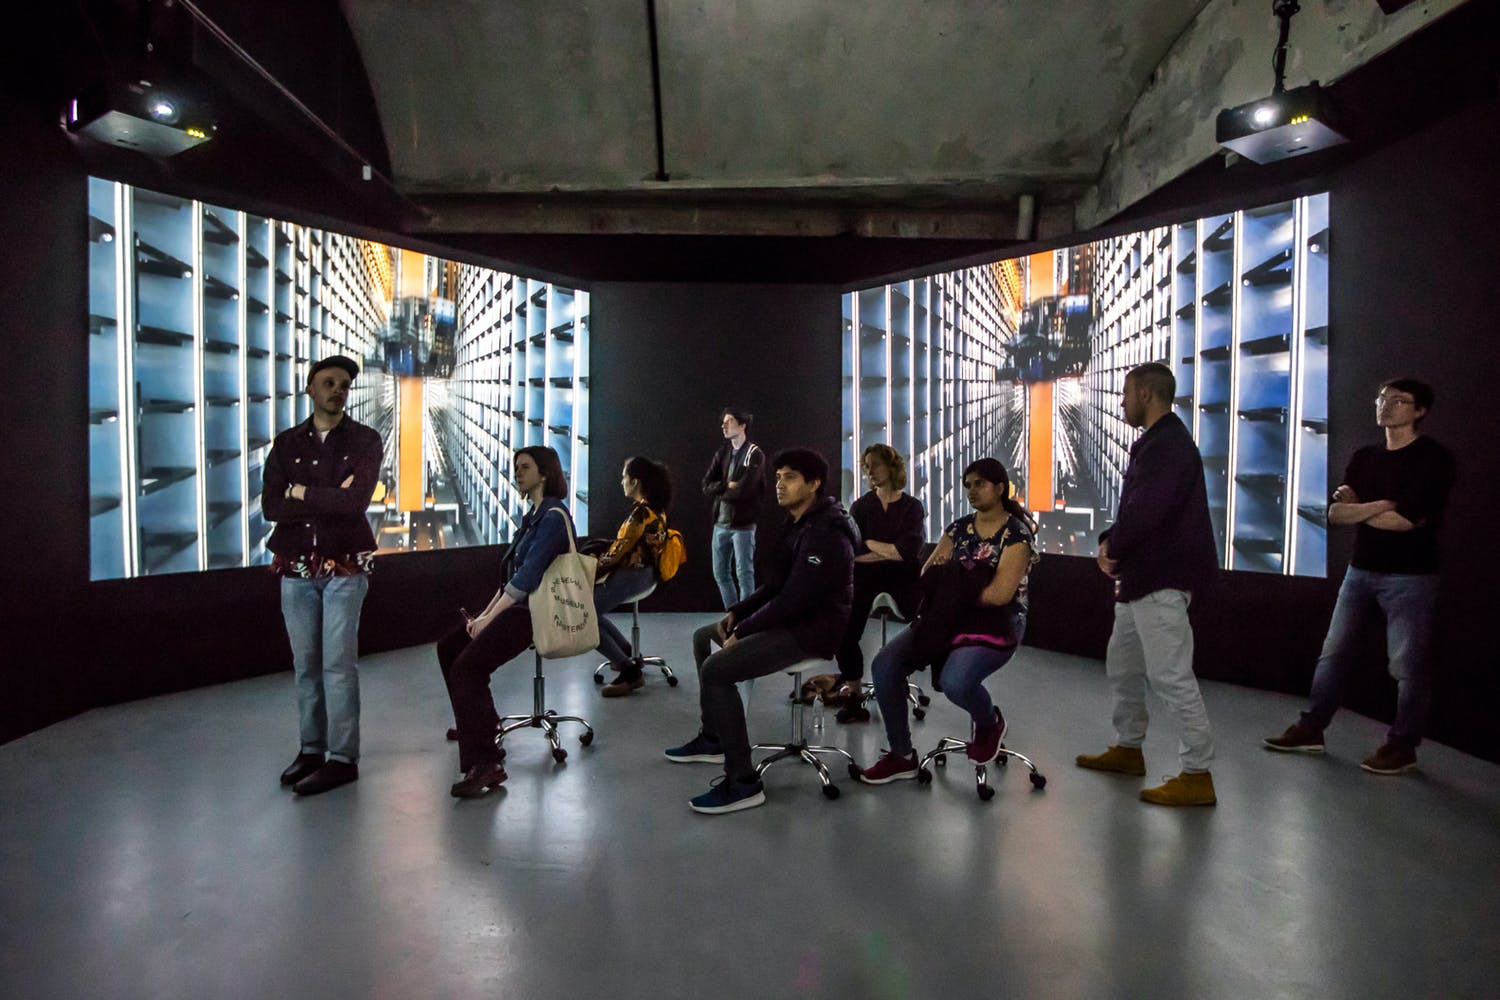 Group of people in a gallery surrounded by large projection screens